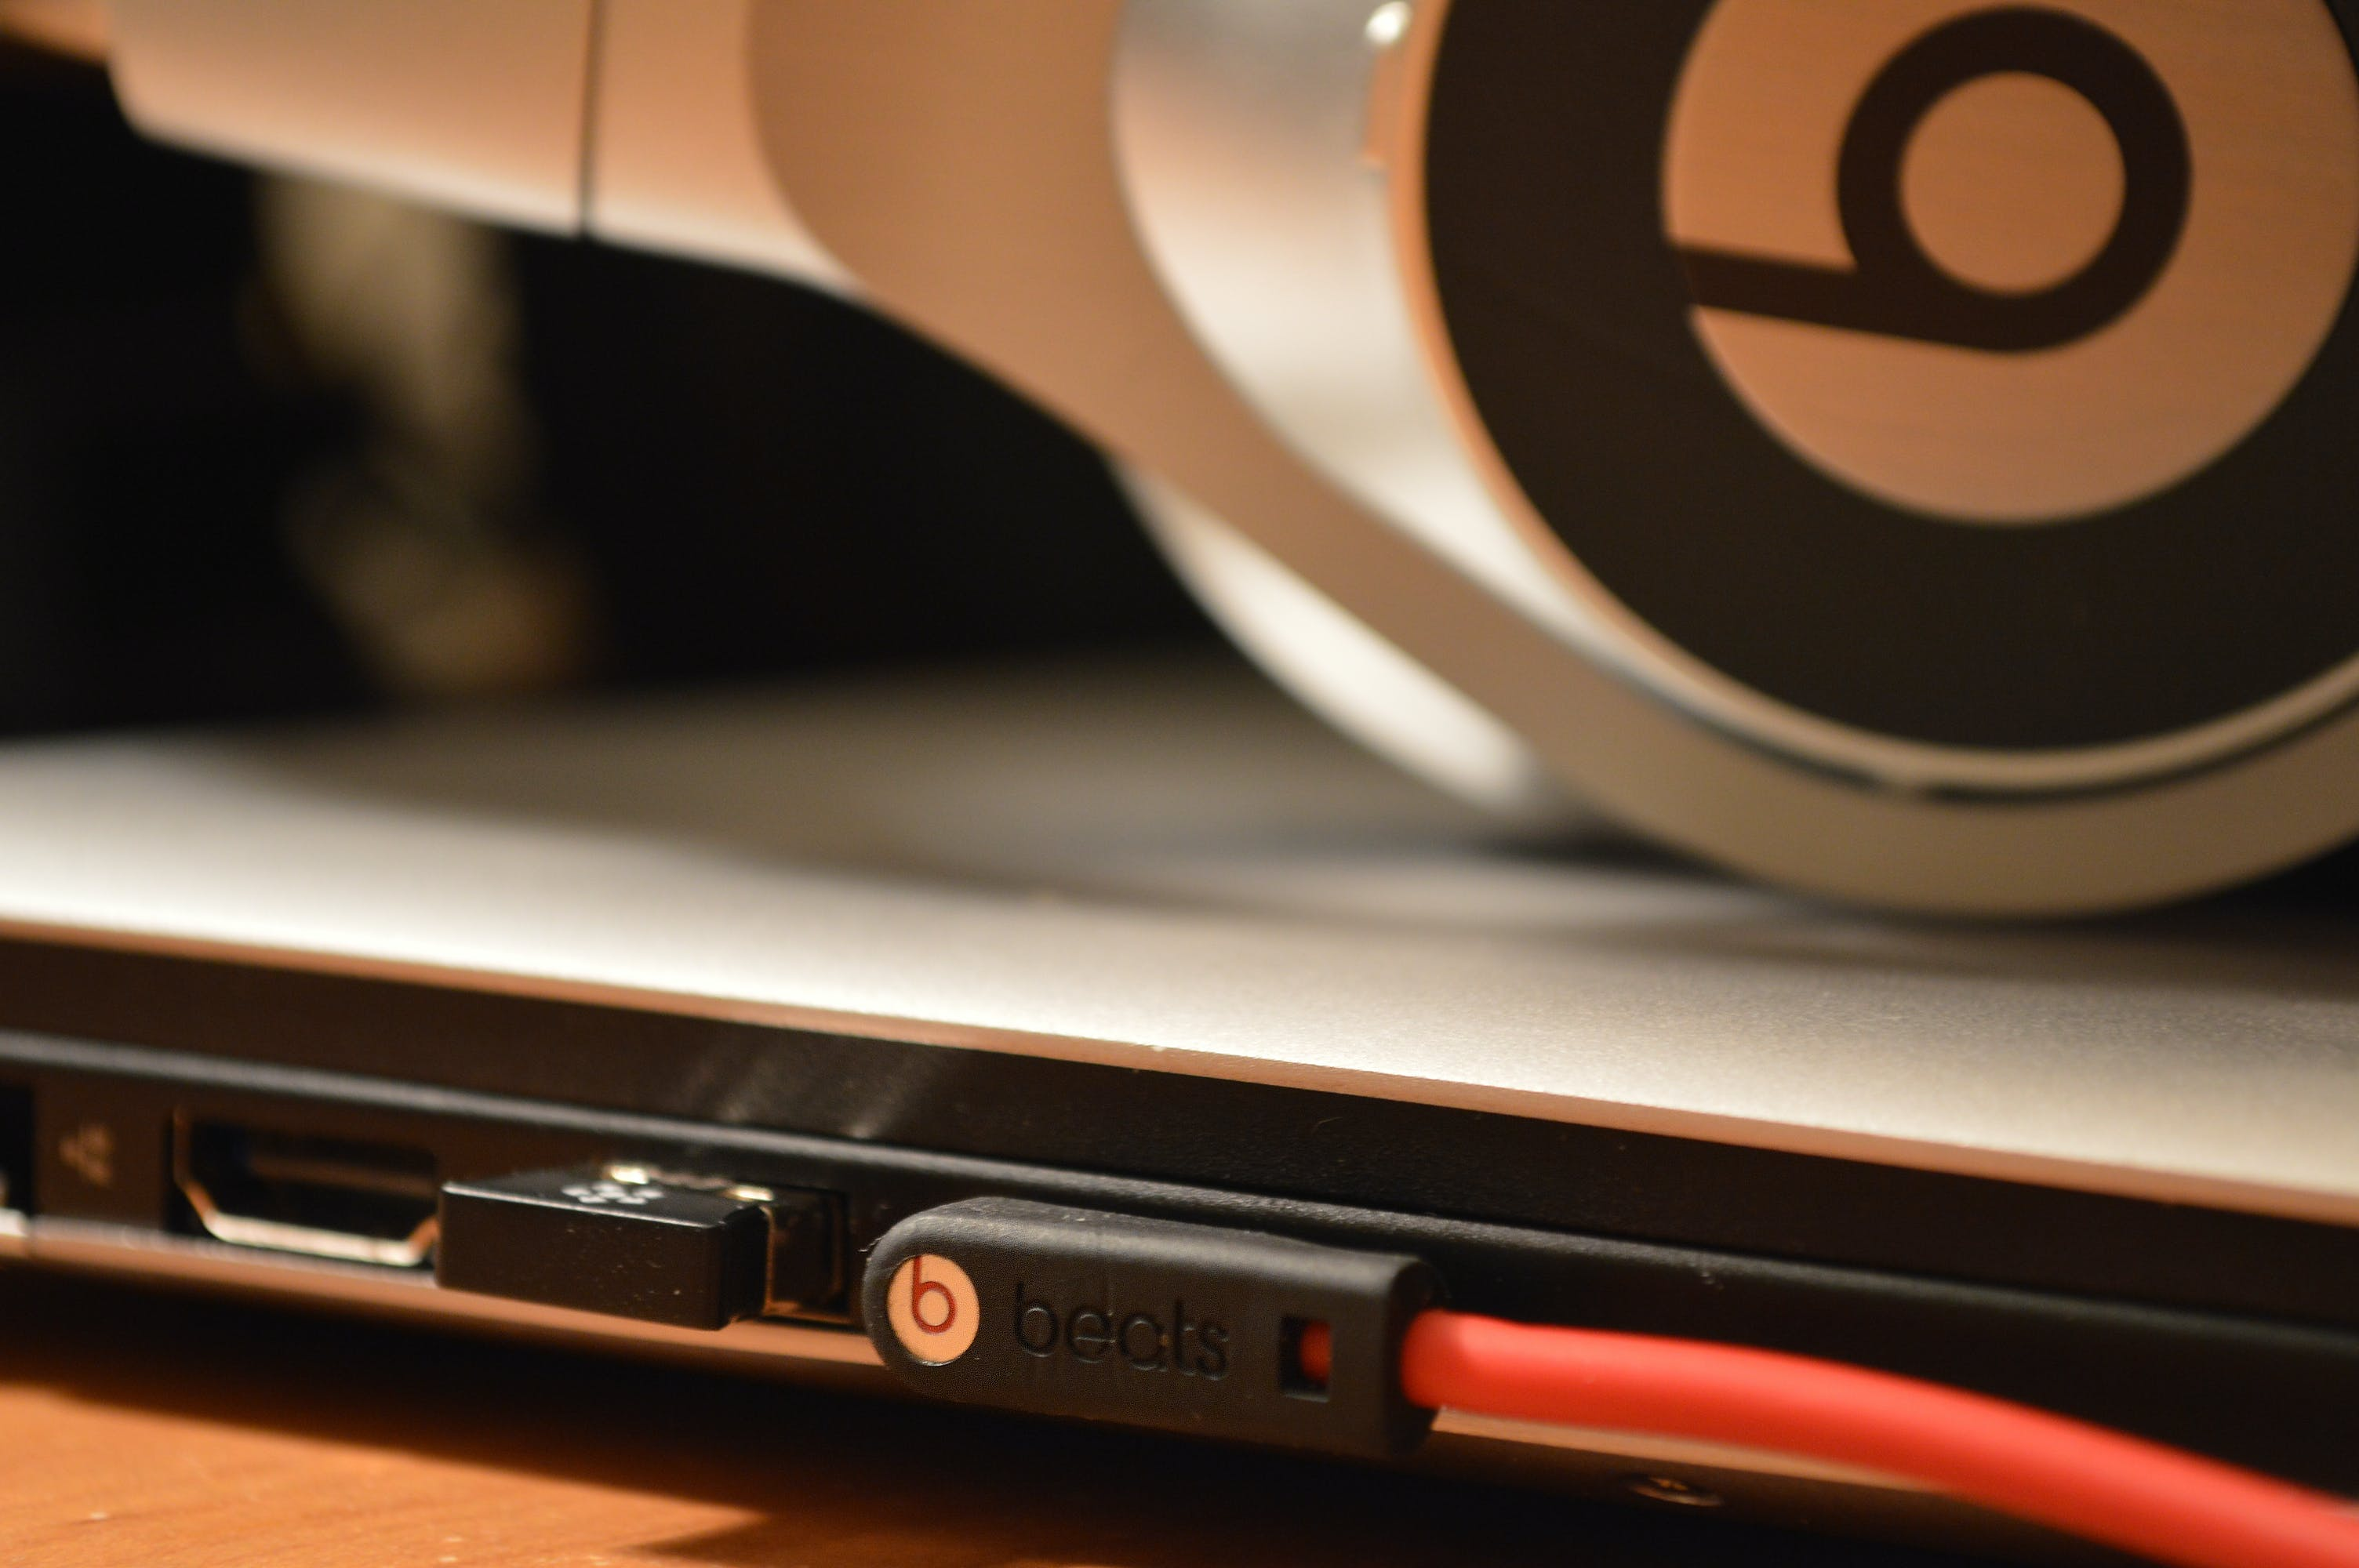 Free stock photo of beats, Beats by Dr Dre, headphones, laptop